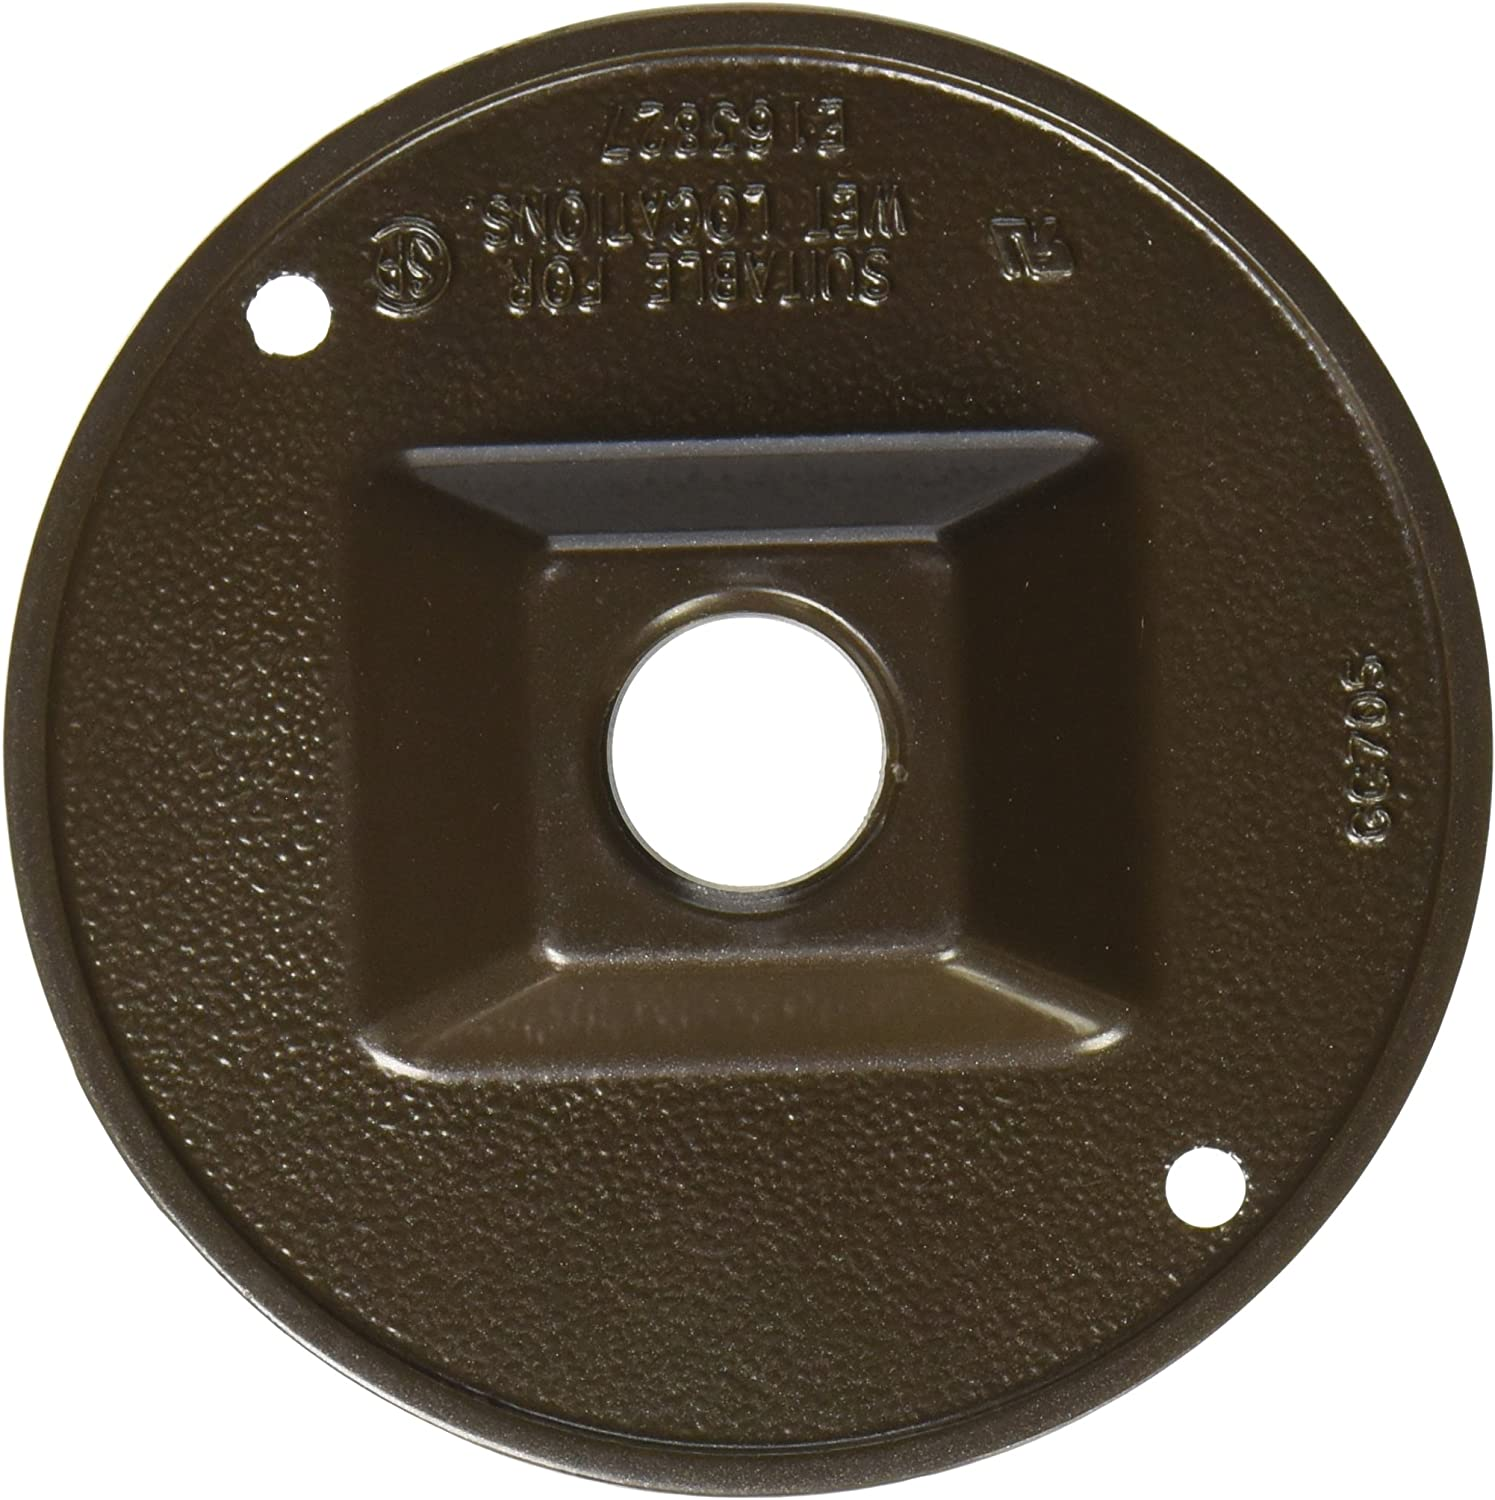 Die Cast Zinc Hubbell-Raco 5193-7 3-Hole Cluster Lamp Holder Cover 4 in Dia Bronze